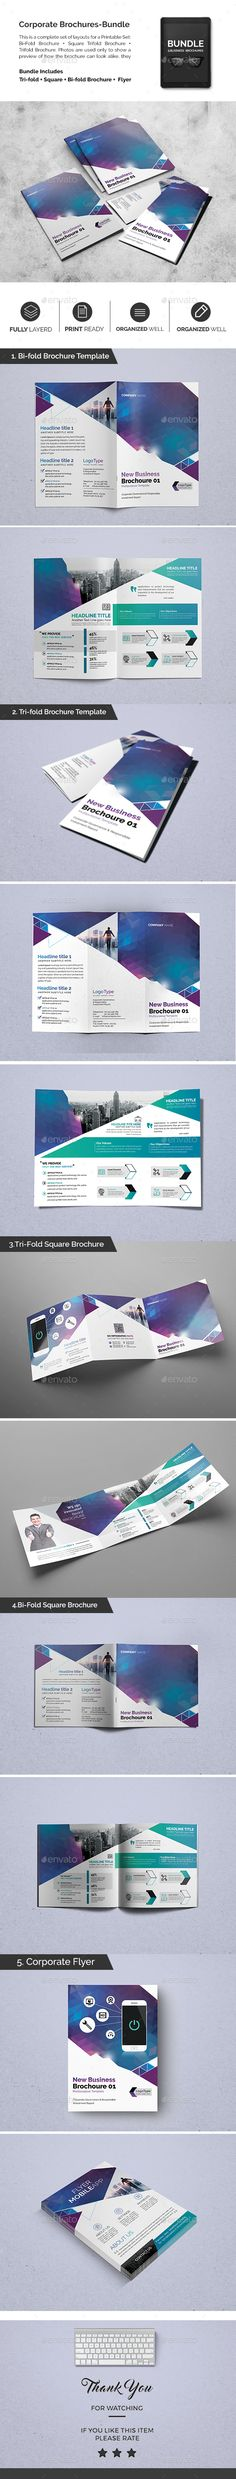 Corporate Brochures Bundle 02  - PSD Template • Only available here ➝ http://graphicriver.net/item/corporate-brochures-bundle-02/16834979?ref=pxcr